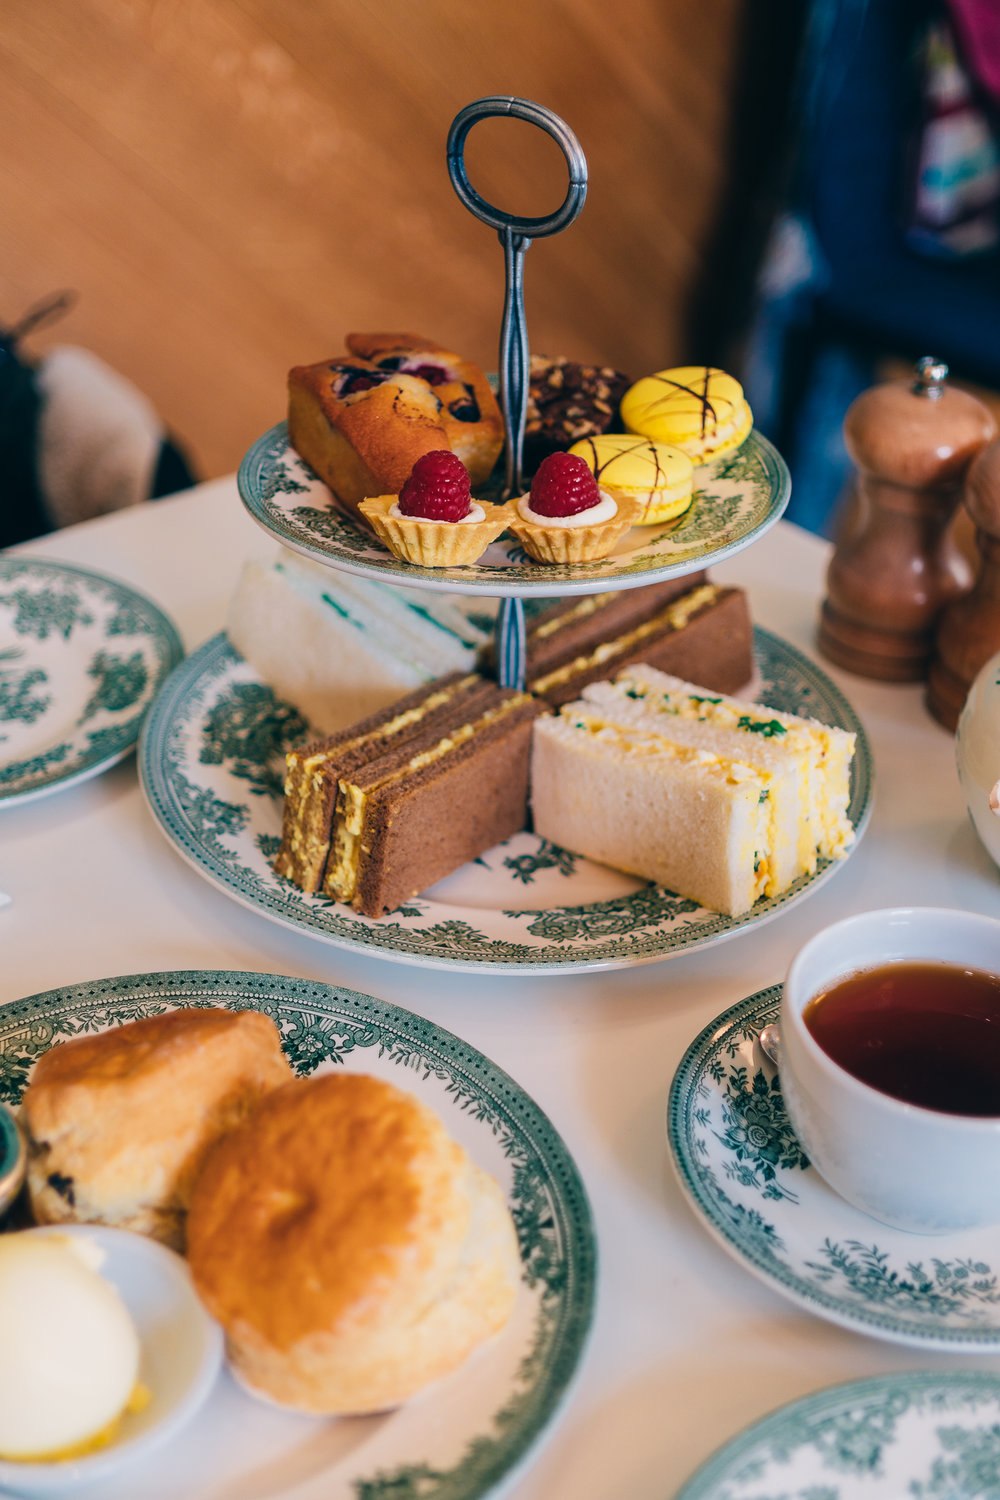 Things to do in London on a Budget - Afternoon tea-1.jpg